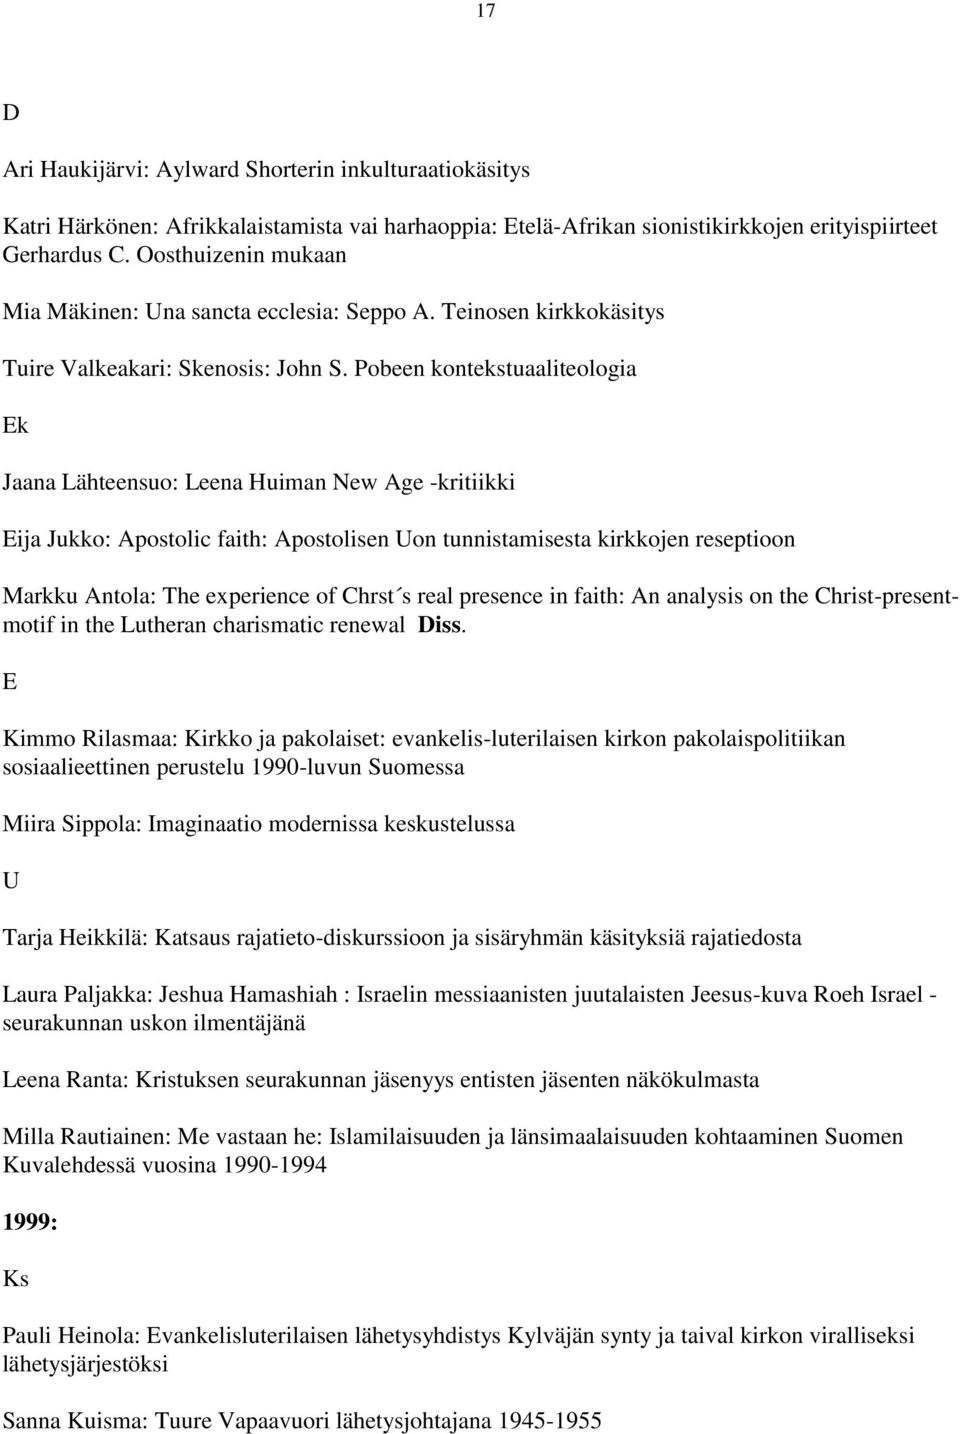 obeen kontekstuaaliteologia Jaana Lähteensuo: Leena Huiman New Age -kritiikki Eija Jukko: Apostolic faith: Apostolisen on tunnistamisesta kirkkojen reseptioon Markku Antola: The experience of Chrst s